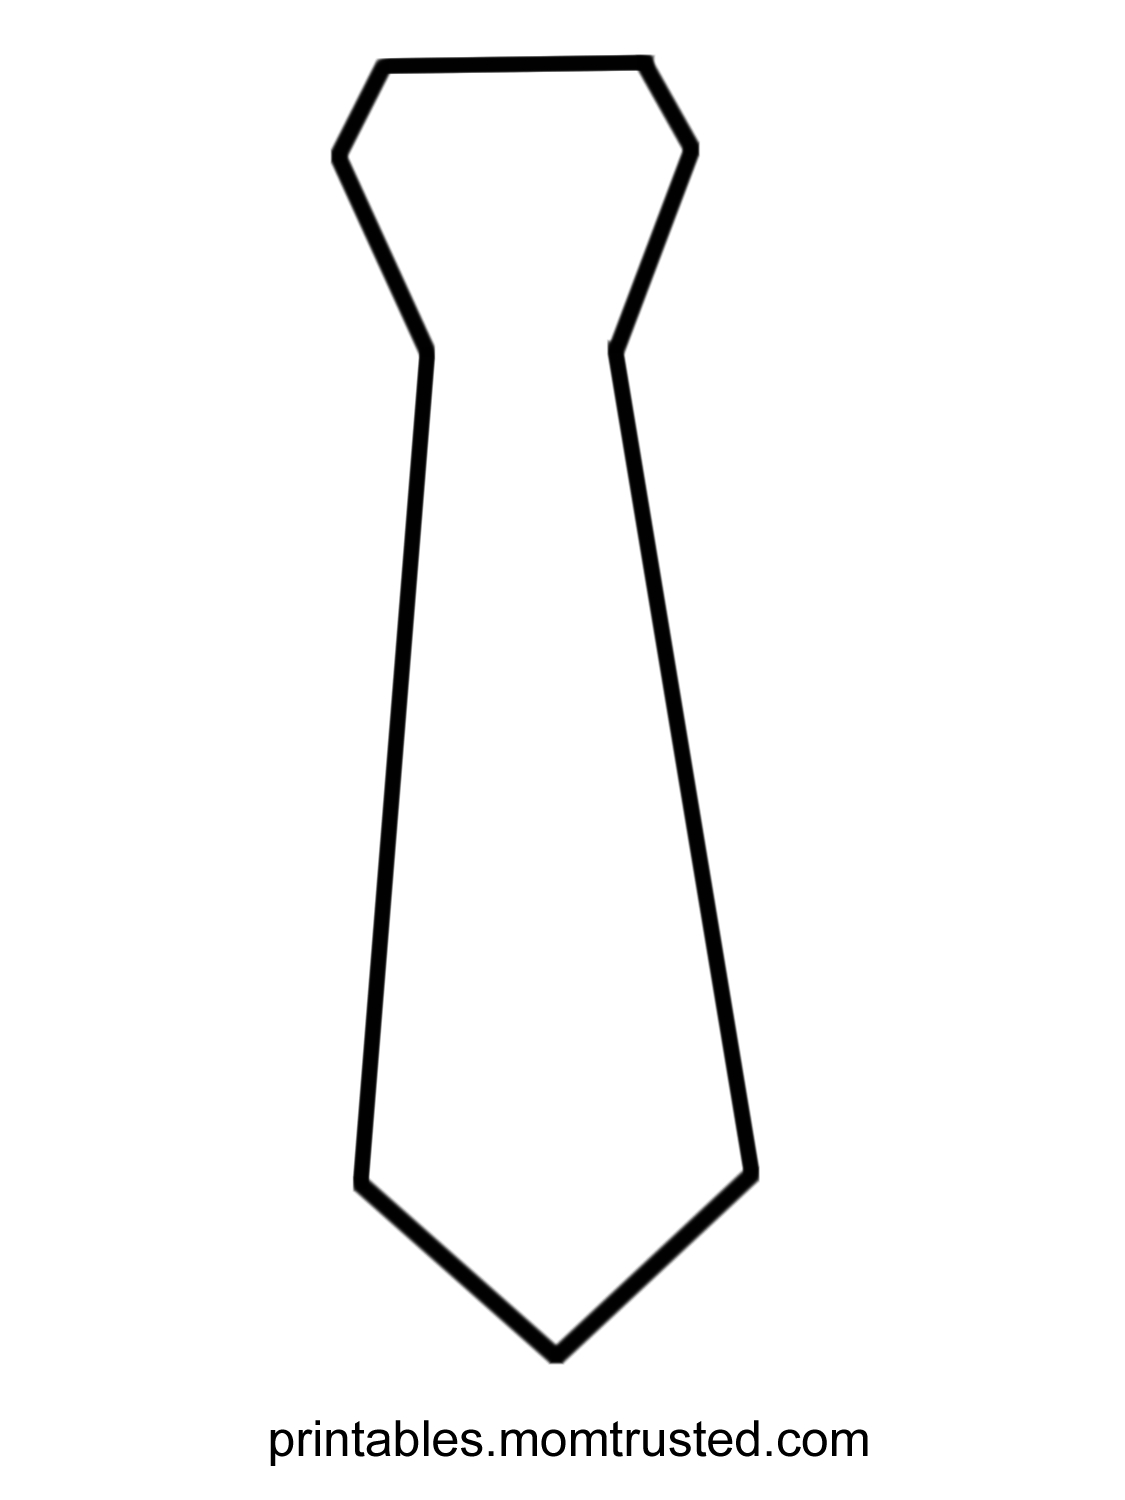 1125x1500 Drawing Of A Tie Drawn Tie